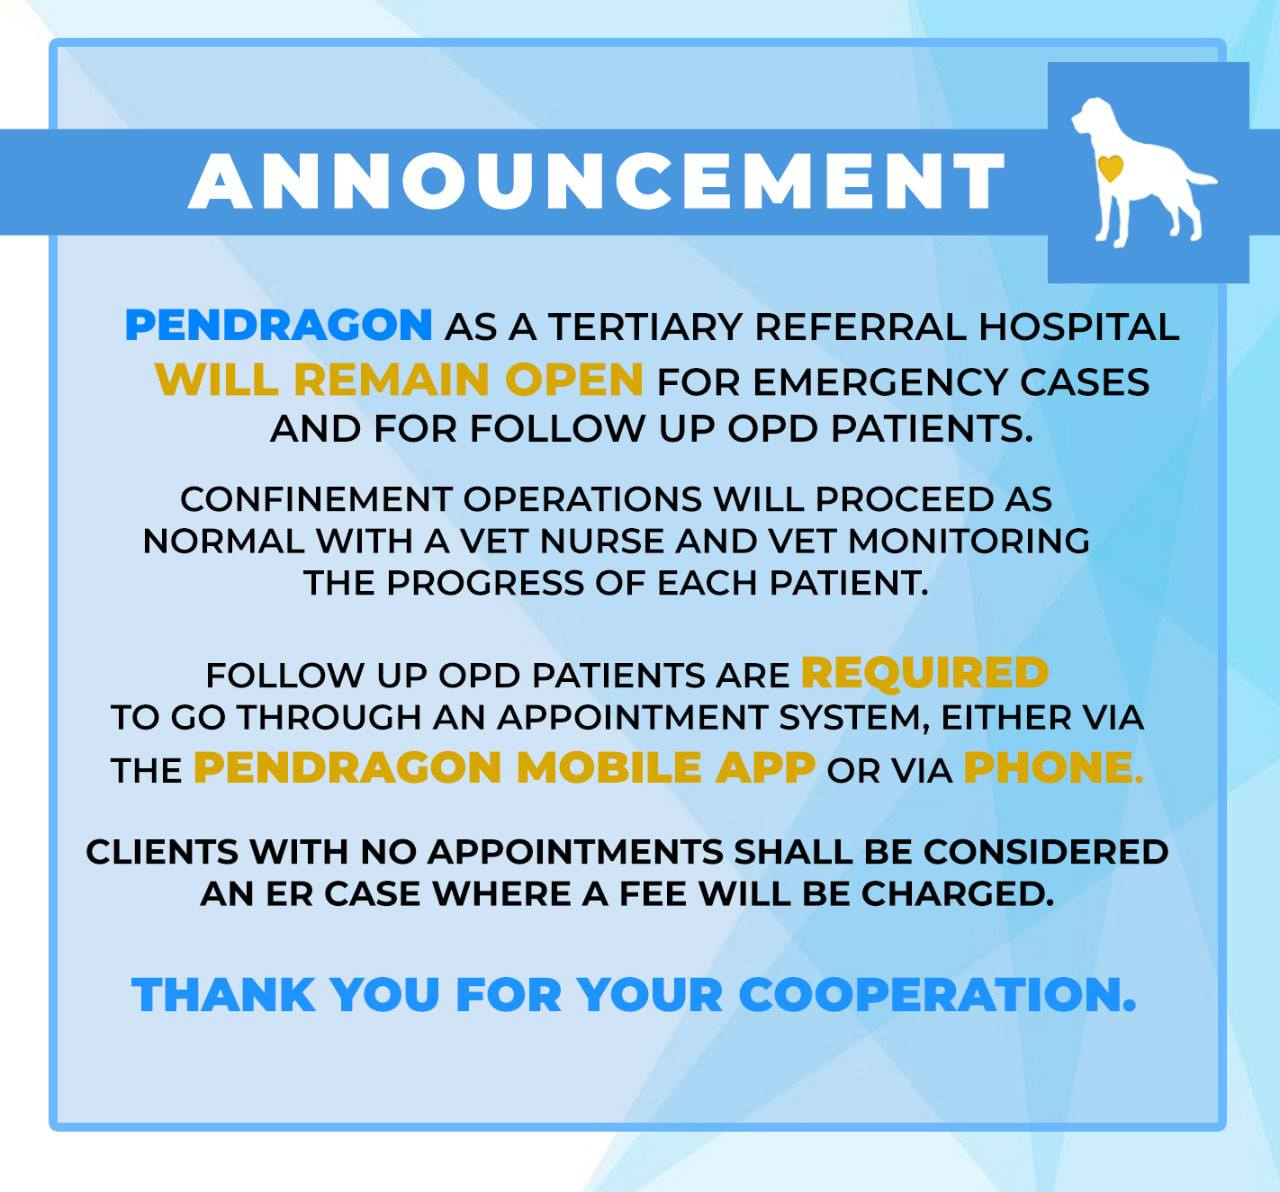 Pendragon Clinic's current schedule